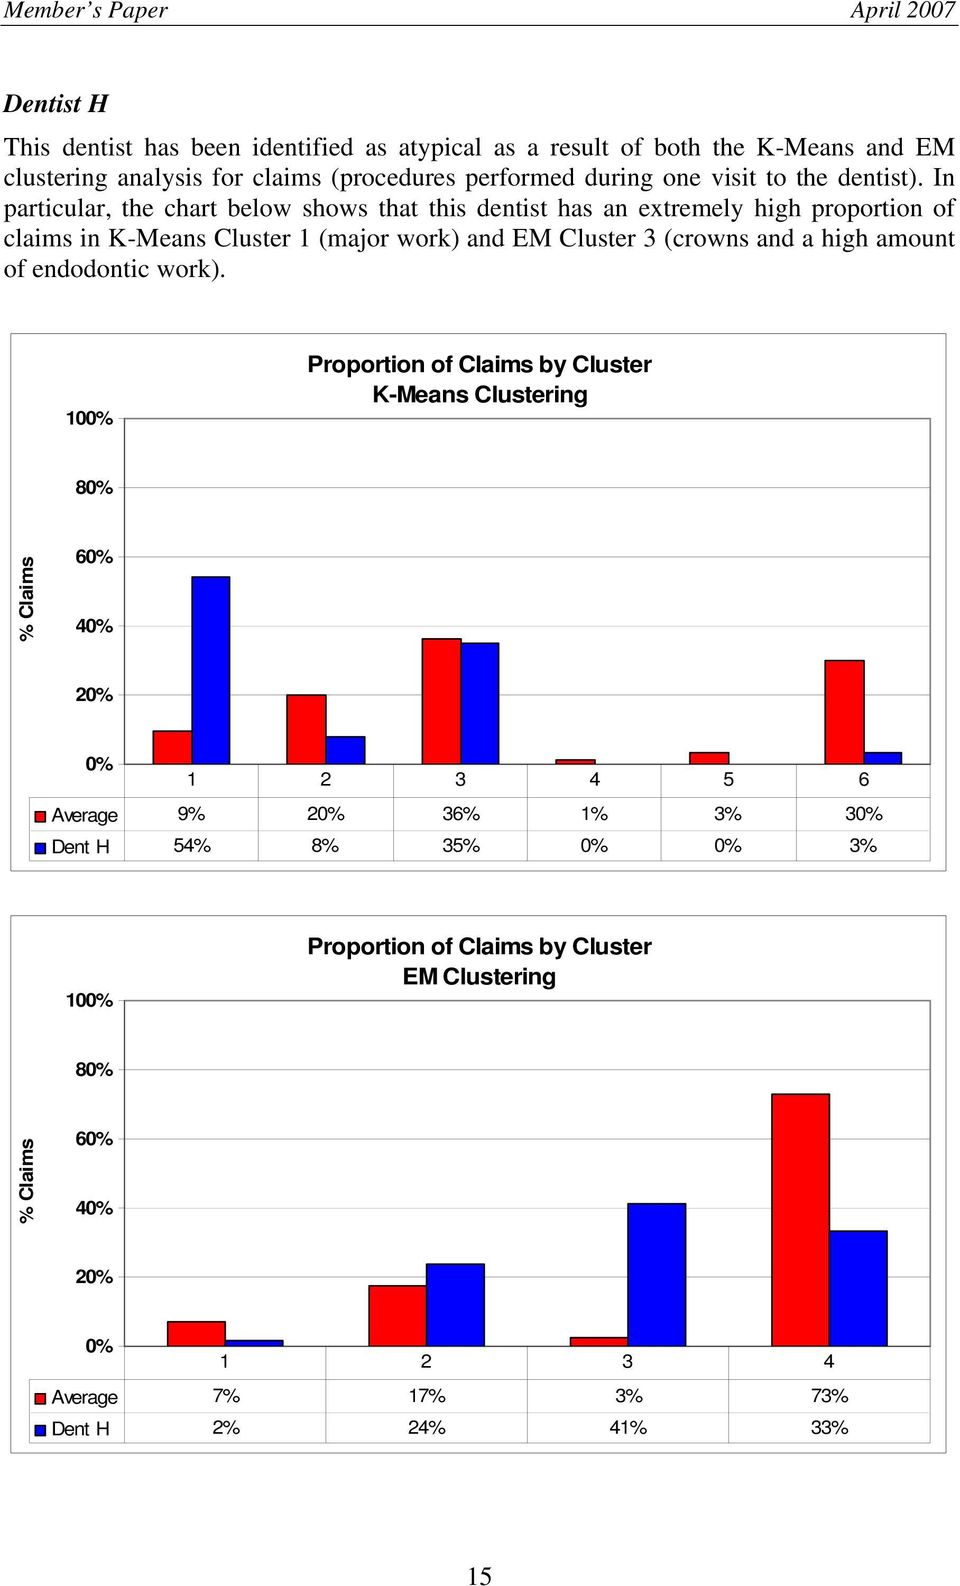 In particular, the chart below shows that this dentist has an extremely high proportion of claims in K-Means Cluster 1 (major work) and EM Cluster 3